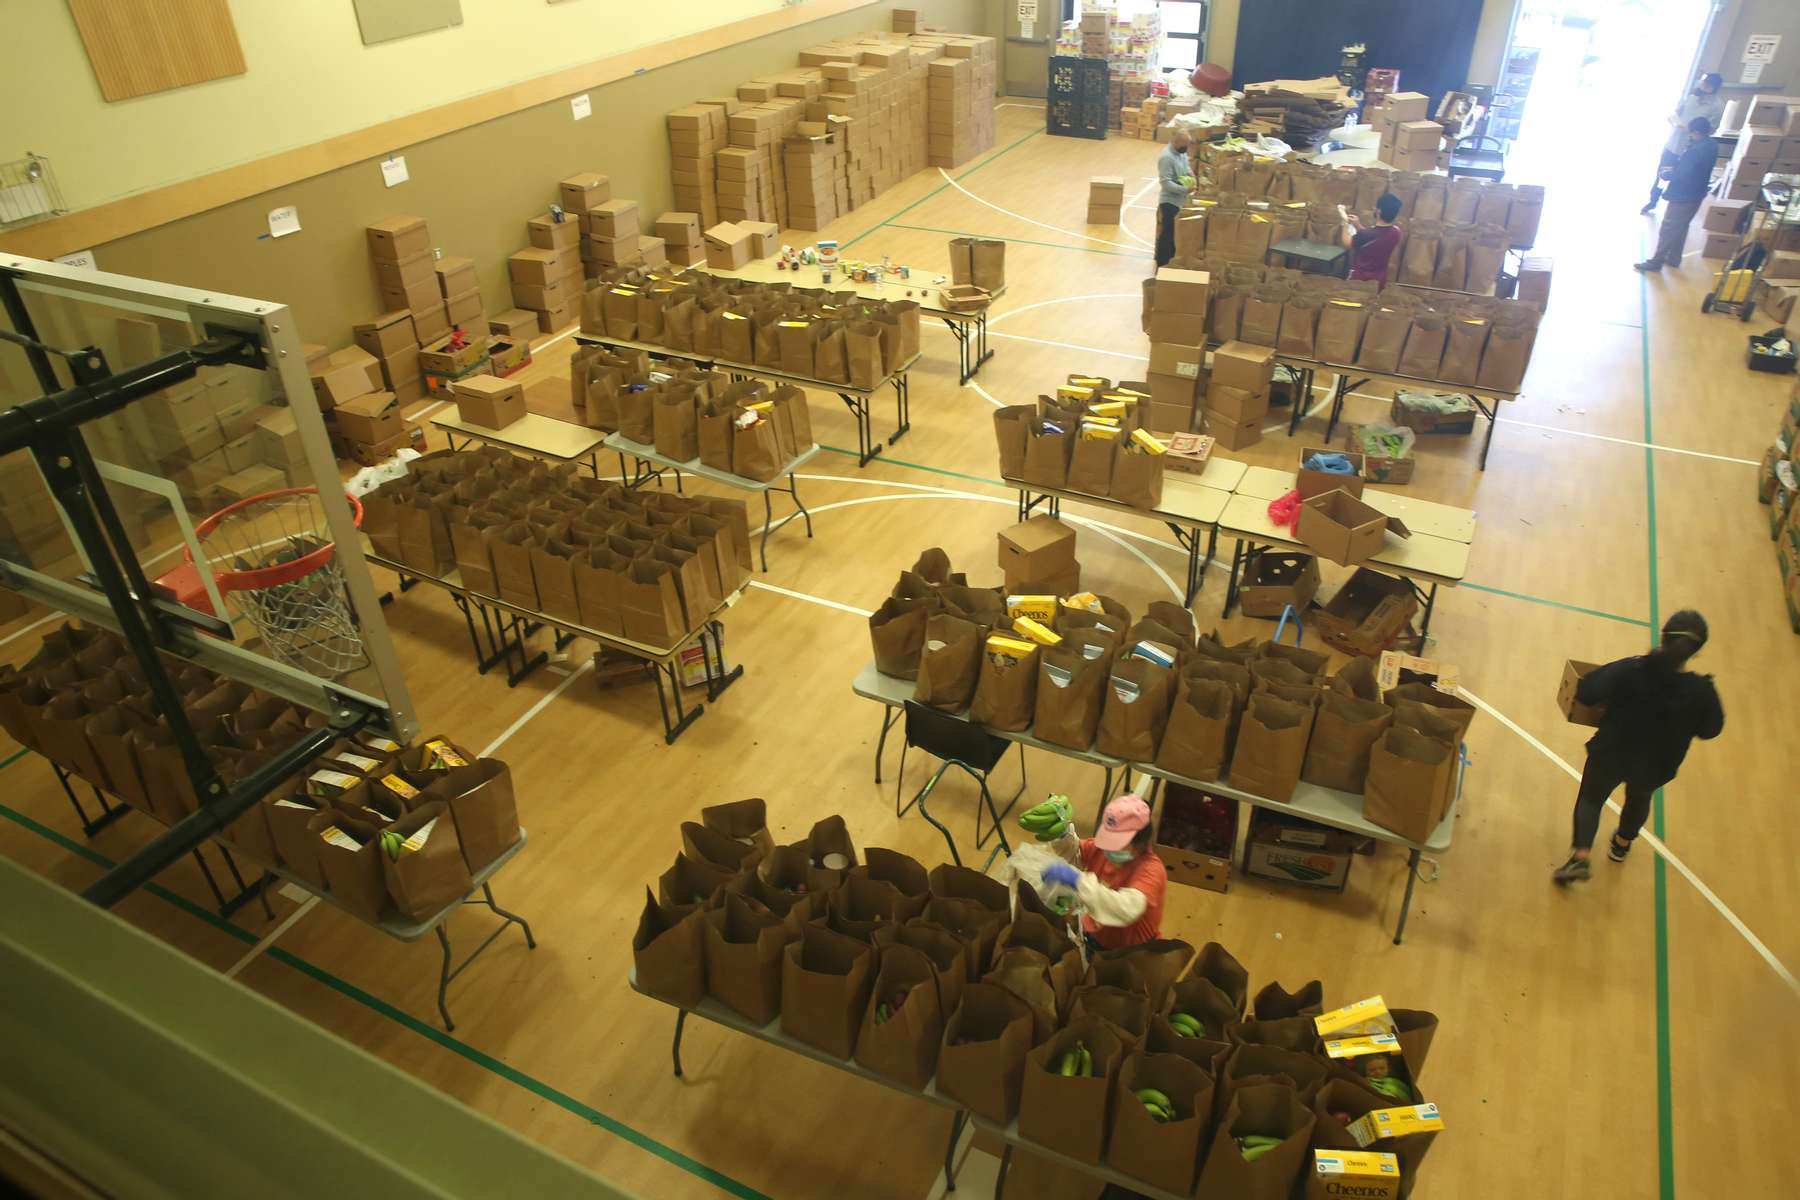 """A gymnasium is transformed into an area where staff and volunteers packed bags of groceries to be distributed to seniors throughout King County at the Asian Counseling and Referral Service in Seattle, Wash. on May 30, 2021. Approximately 2,250 meals and 2,250 grocery bags were prepared each week, delivered Monday through Friday. The vast majority of meals and bagged groceries went to AAPI elders. Many of them live in the CID; however, King County Access Transportation and various community groups help to deliver to isolated and homebound elders all over King County. Volunteer drivers from over 20 organizations delivered the meals. Says Liza Javier, communications manager at ACRS, """"We wanted to provide healthy meals and groceries to elders during the pandemic while ensuring they could remain safe at home."""" (photos by Karen Ducey)"""